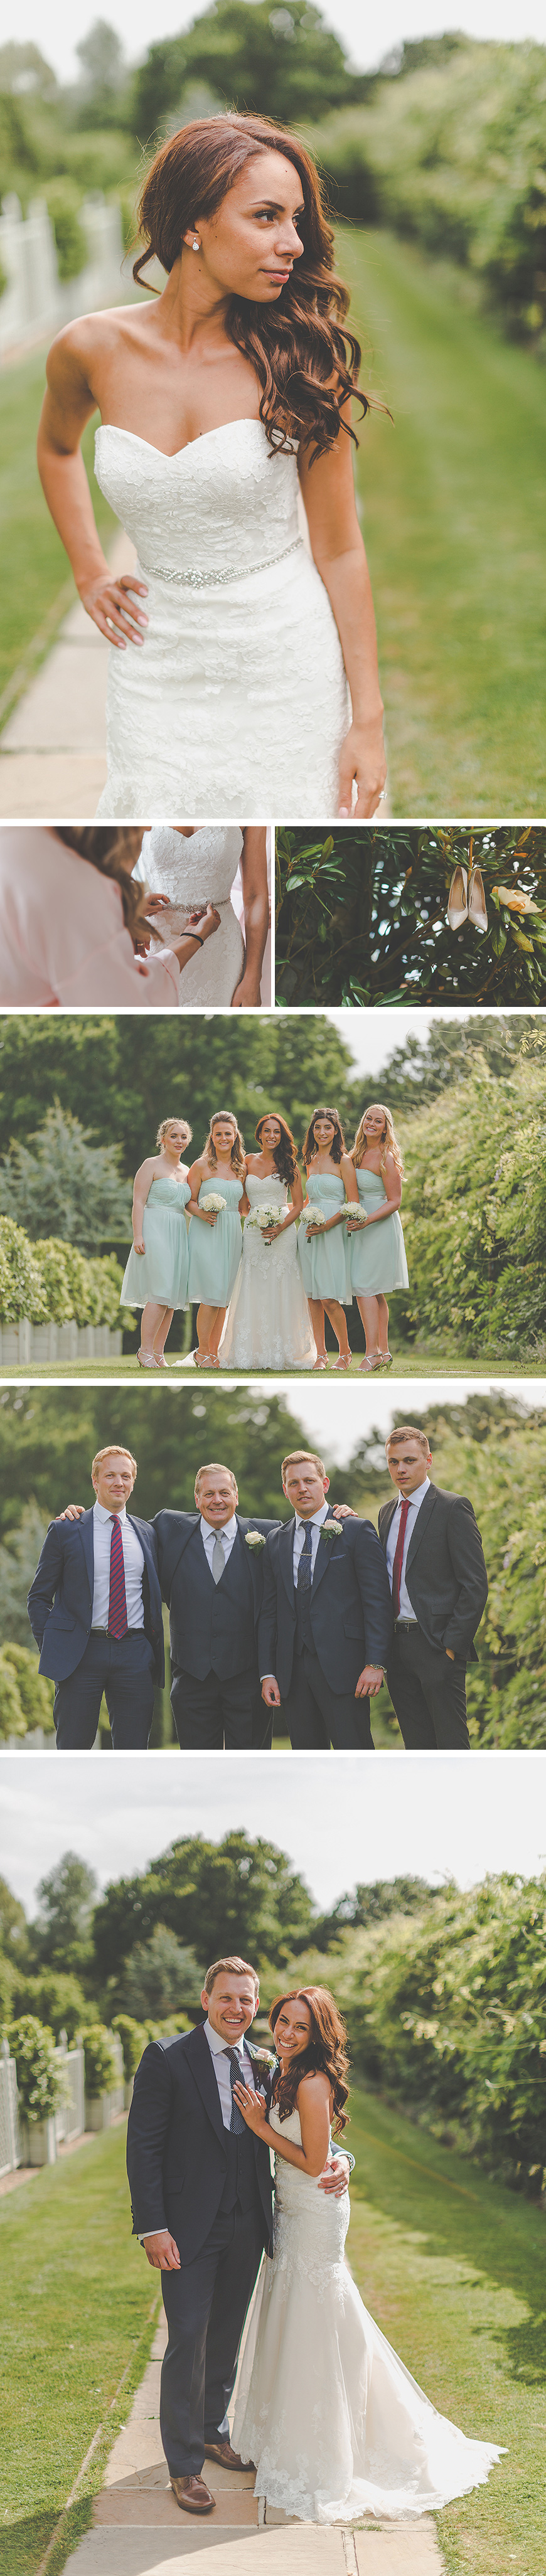 Zillia and Martyn's Pastel Summer Wedding At Braxted Park - The outfits | CHWV